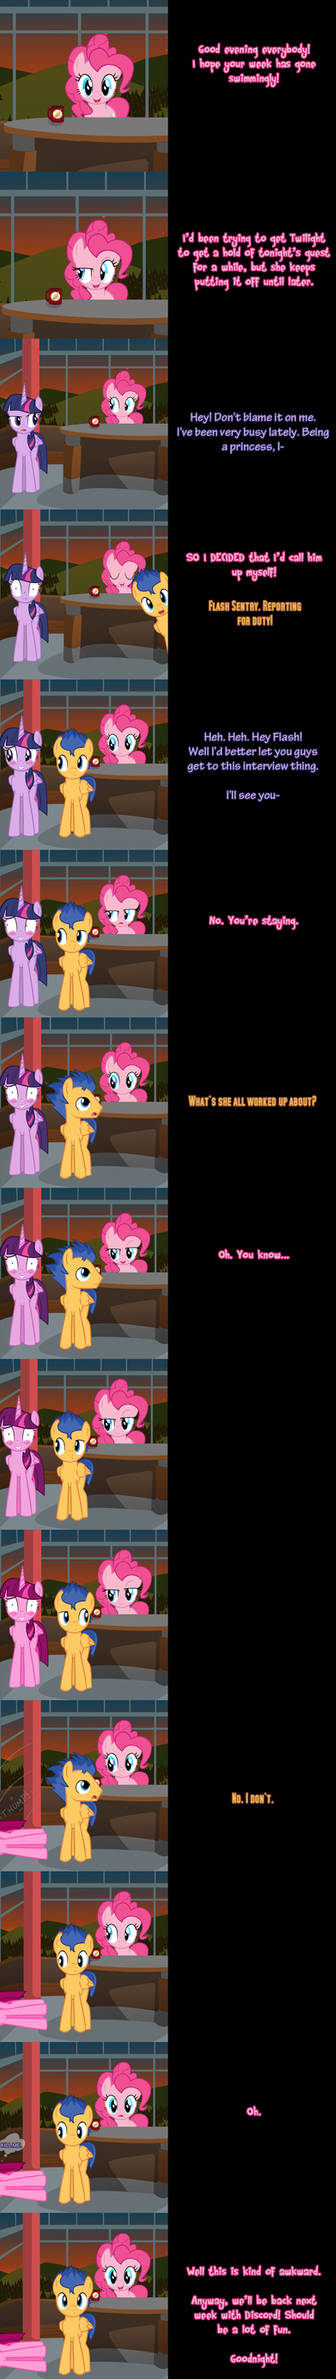 Pinkie Pie Says Goodnight - Flashlight Shipwreck